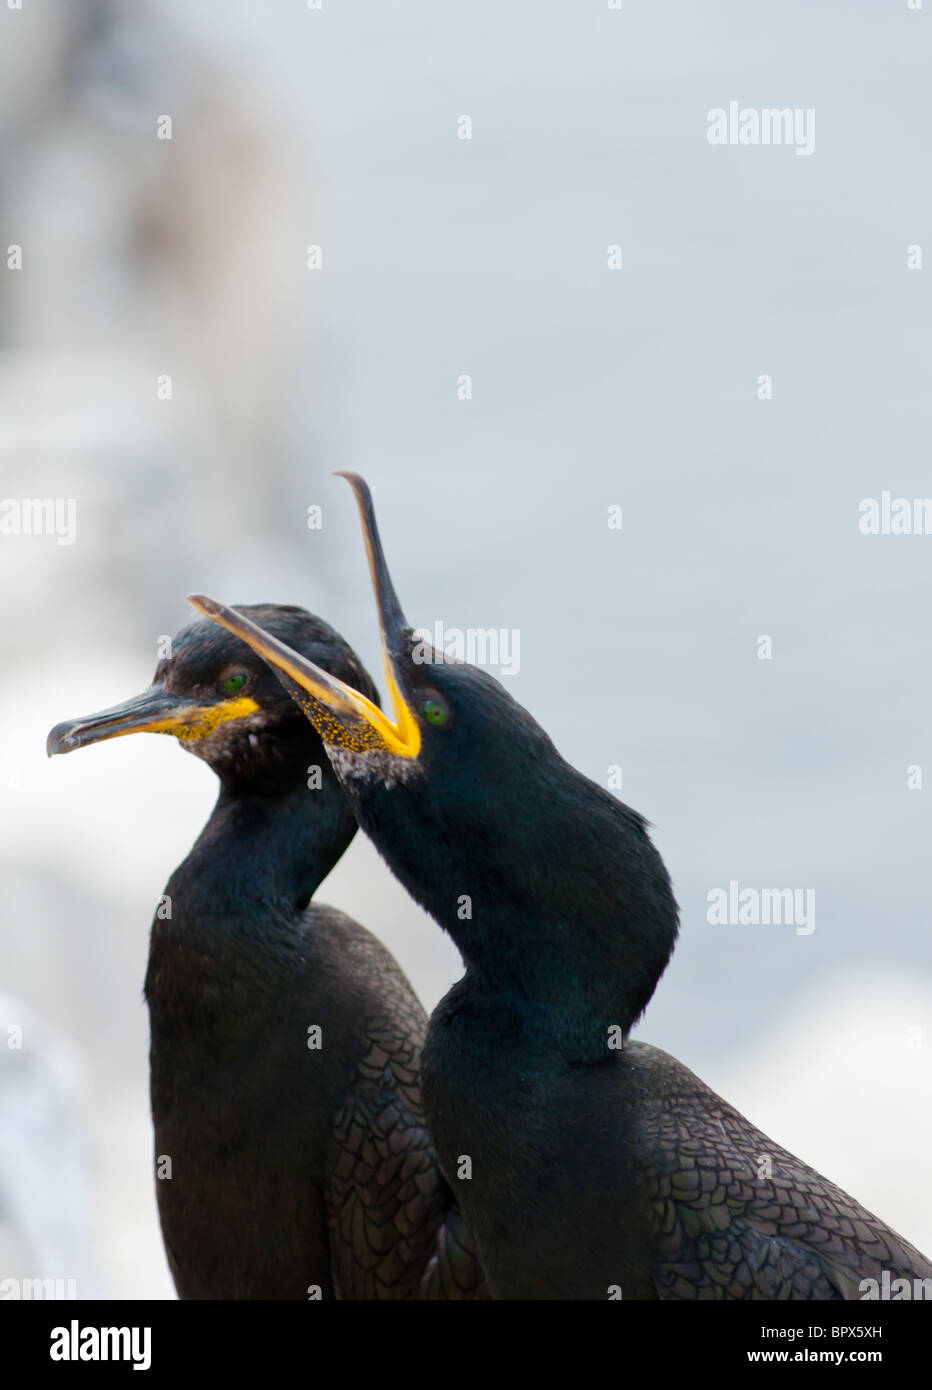 Two European or Common Shags (Phalacrocorax aristotelis) taken on the Farne Islands Northumberland. England. - Stock Image